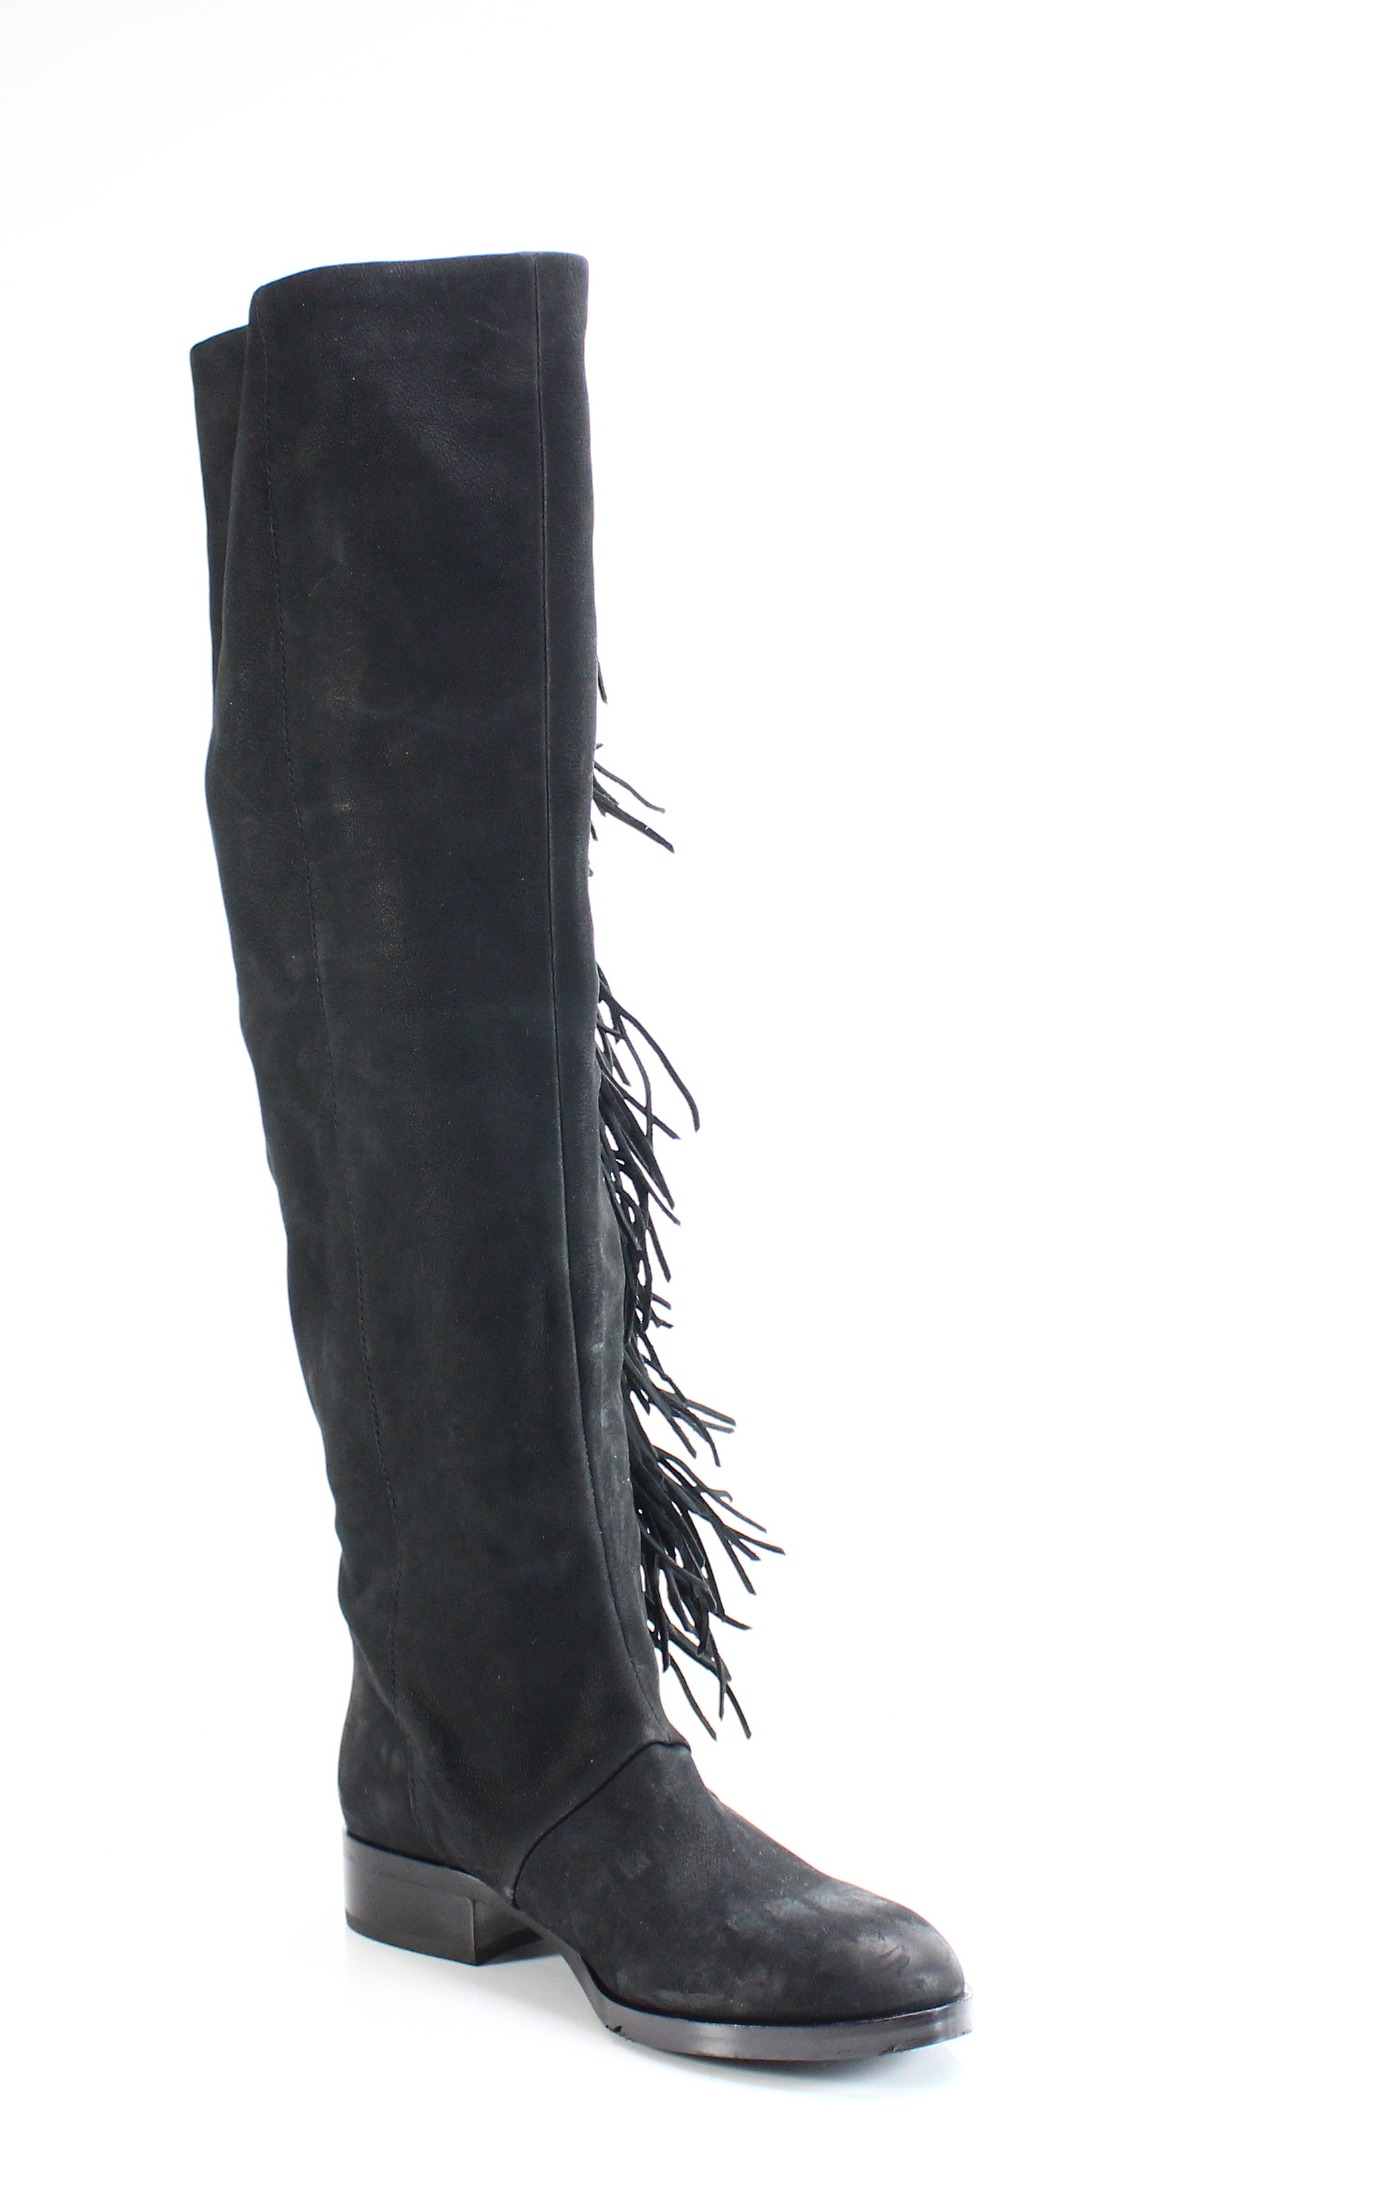 e62699ffe2f27 Details about Sam Edelman NEW Black Size 7.5M Josephine Knee High Boots  Leather  274-  084